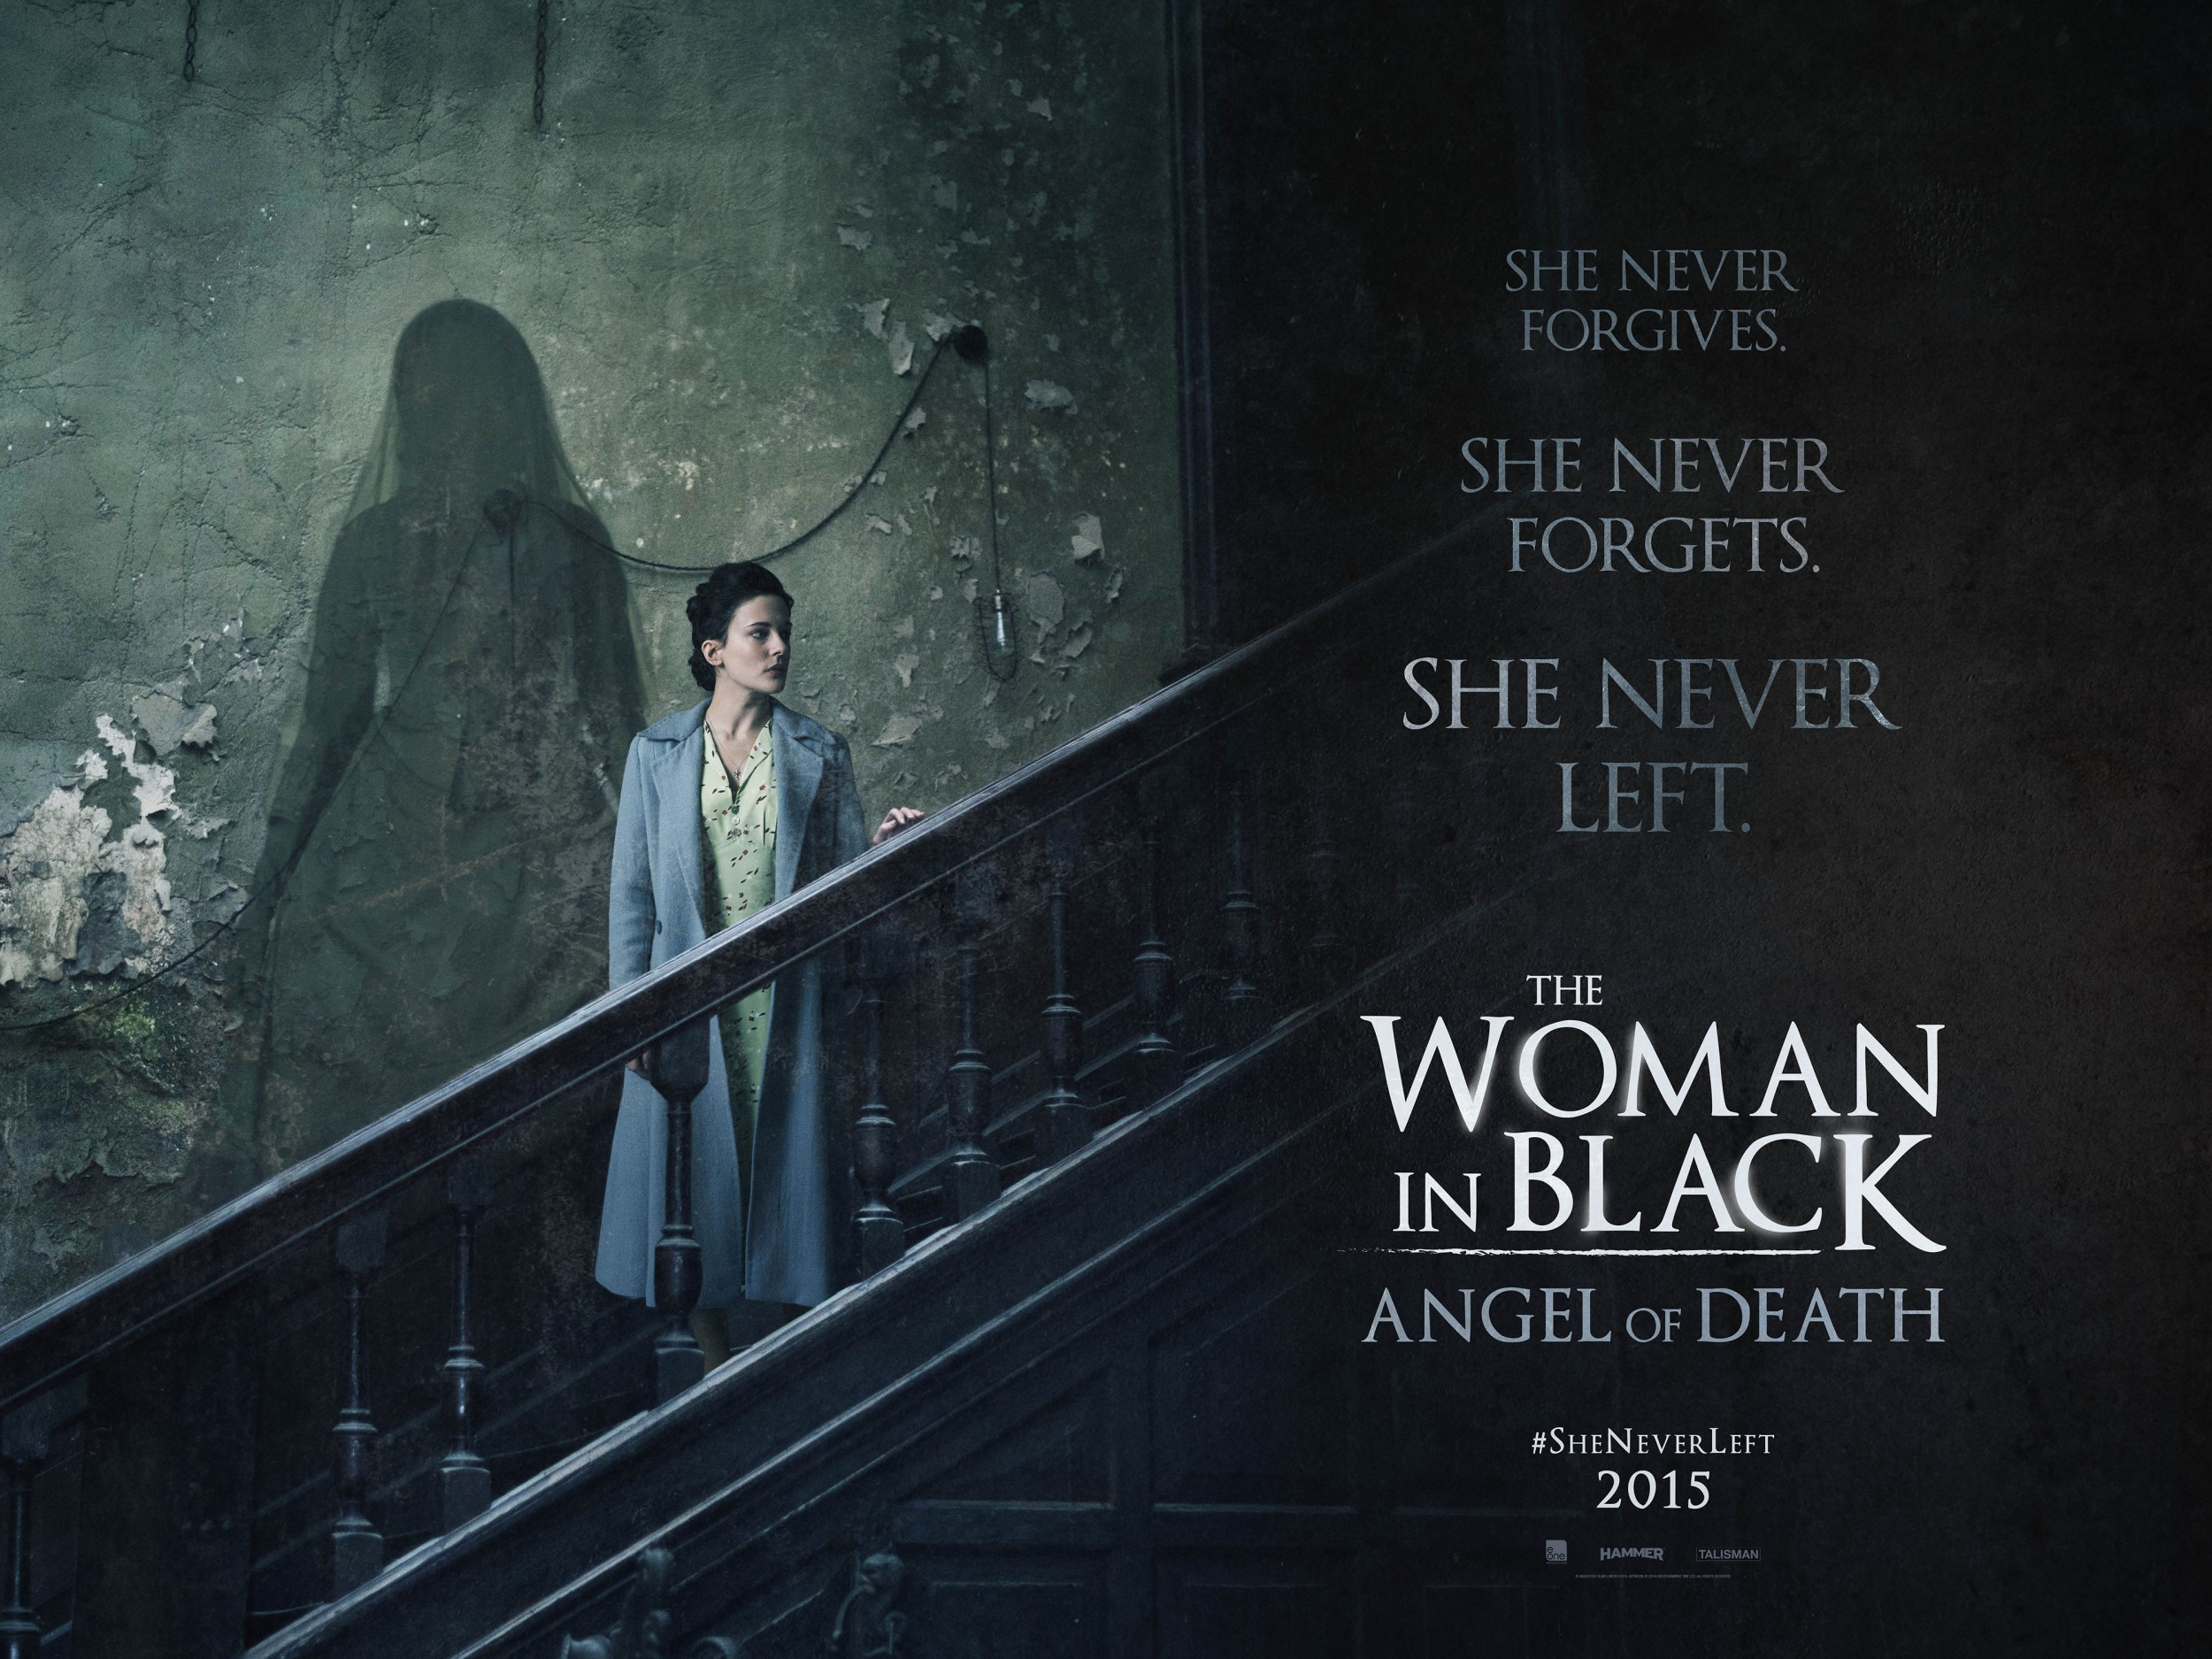 The Woman in Black Angel of Death-Official Poster XXLG-13OUTUBRO2014-01